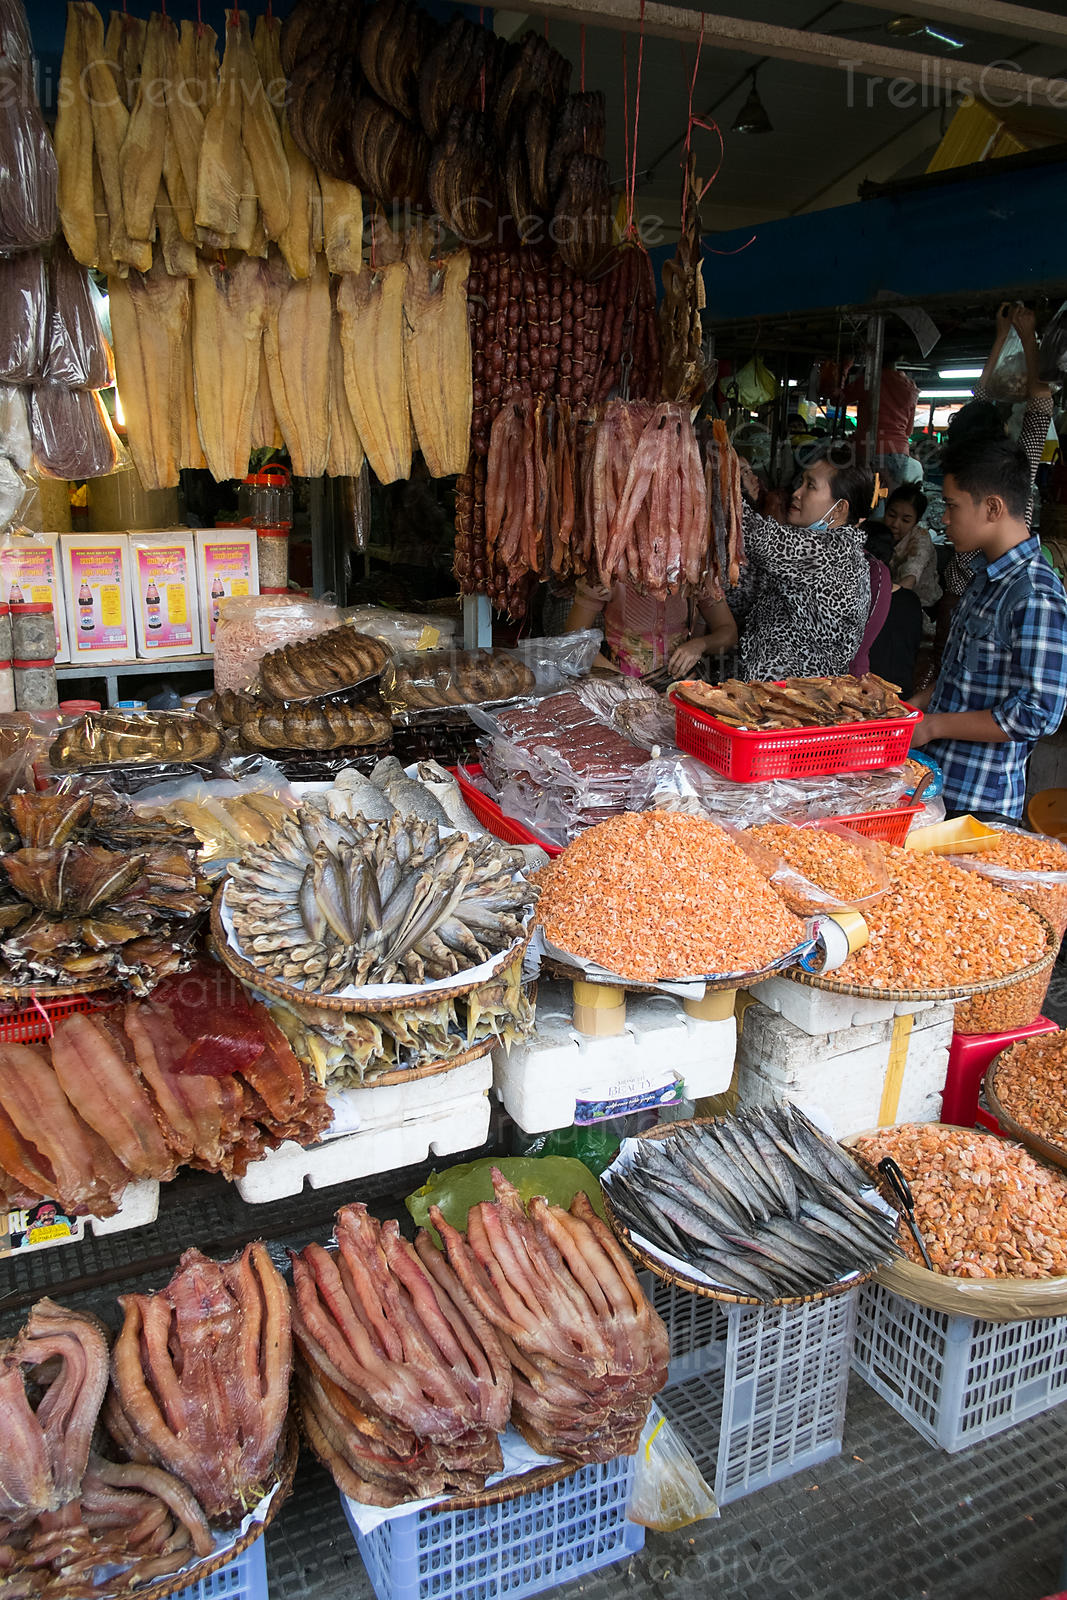 Dried fish and seafood for sale at an open air market